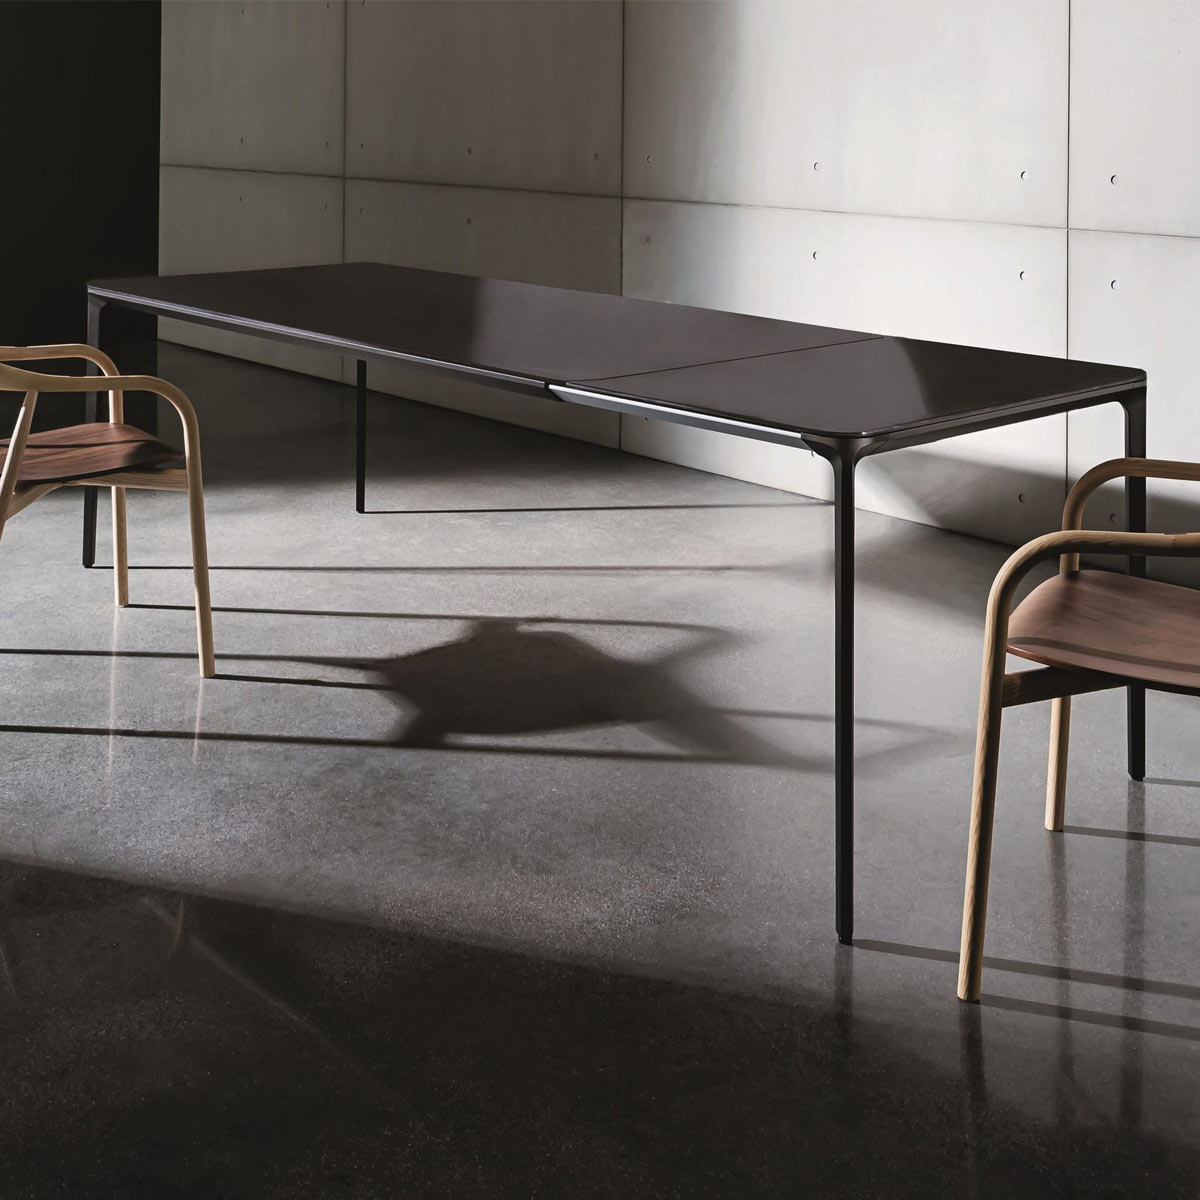 100 Extended Dining Table Florence Round Extending  : slim extendedingdiningtable from 108.61.189.51 size 1200 x 1200 jpeg 60kB